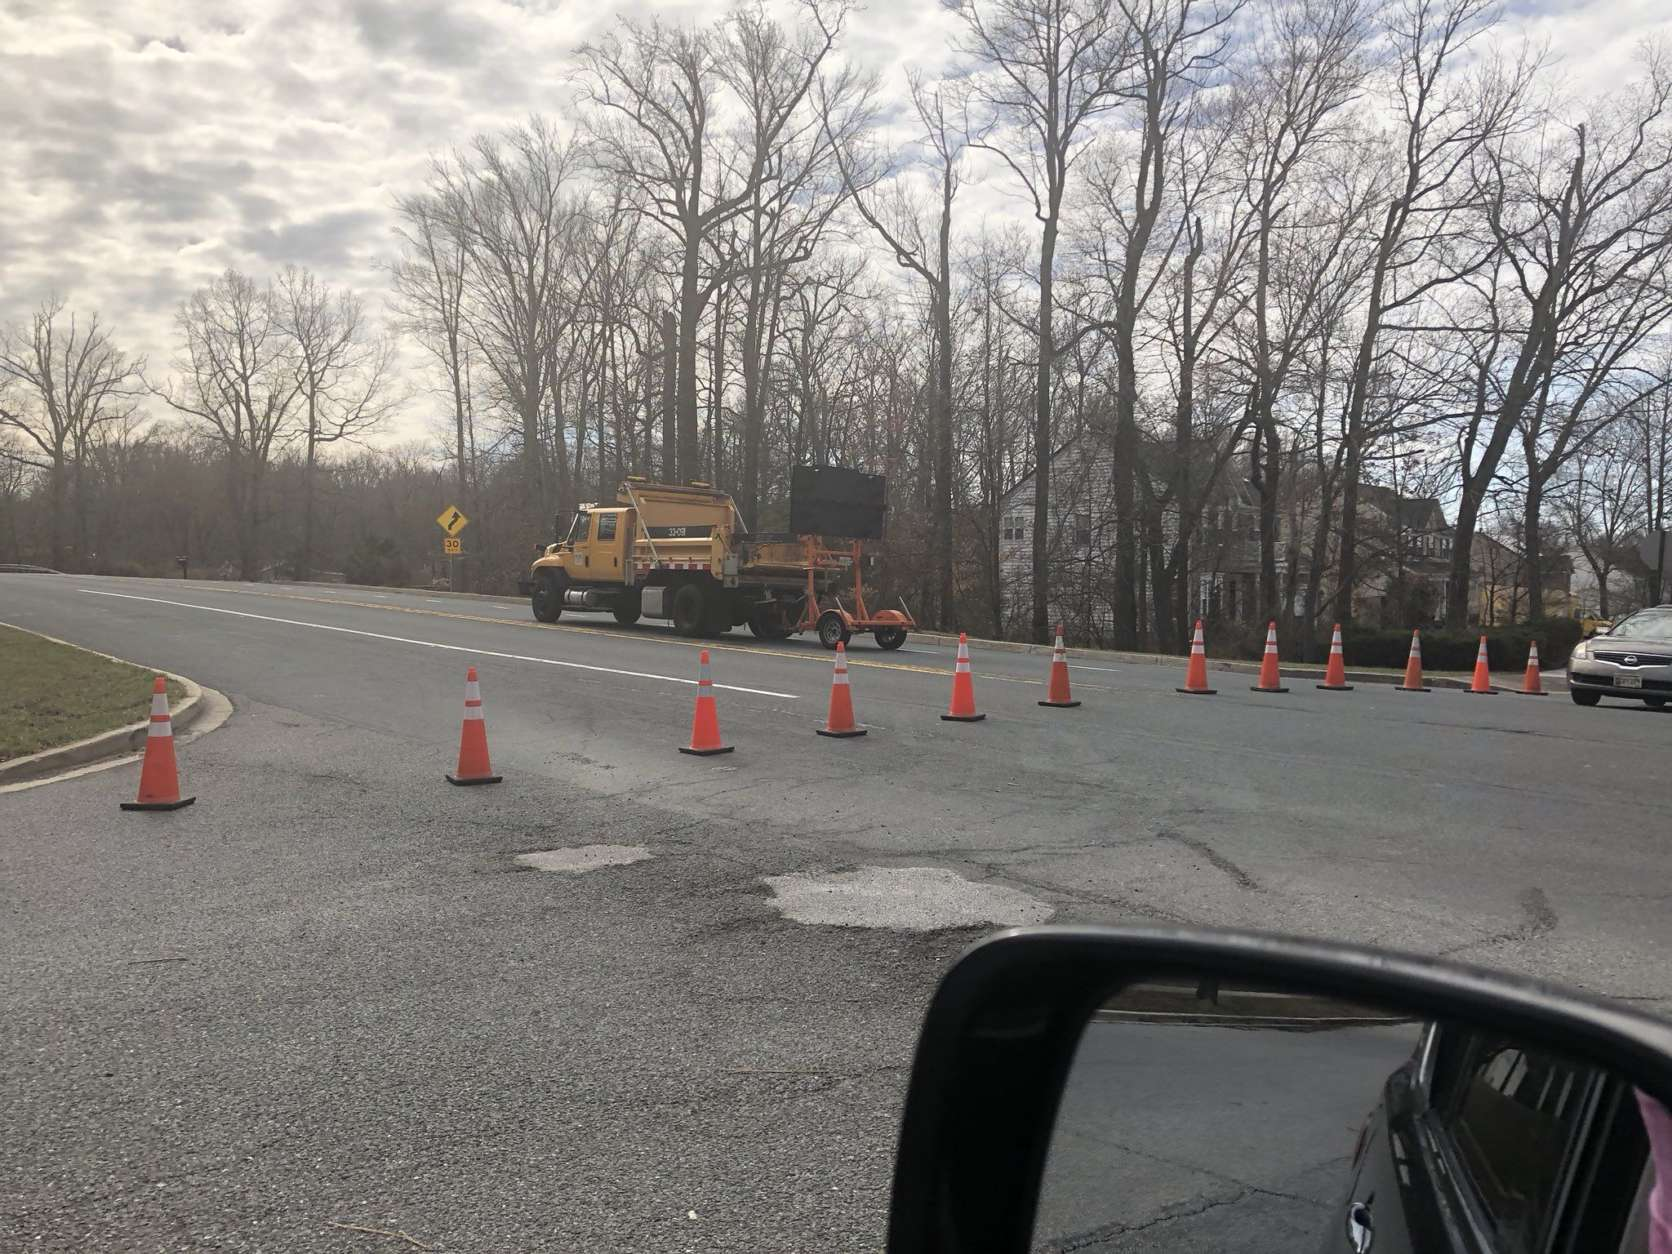 Route 197 in Maryland is blocked in both directions by a downed tree about a half-mile past BW Parkway. (Courtesy Missy Krissy via Twitter)